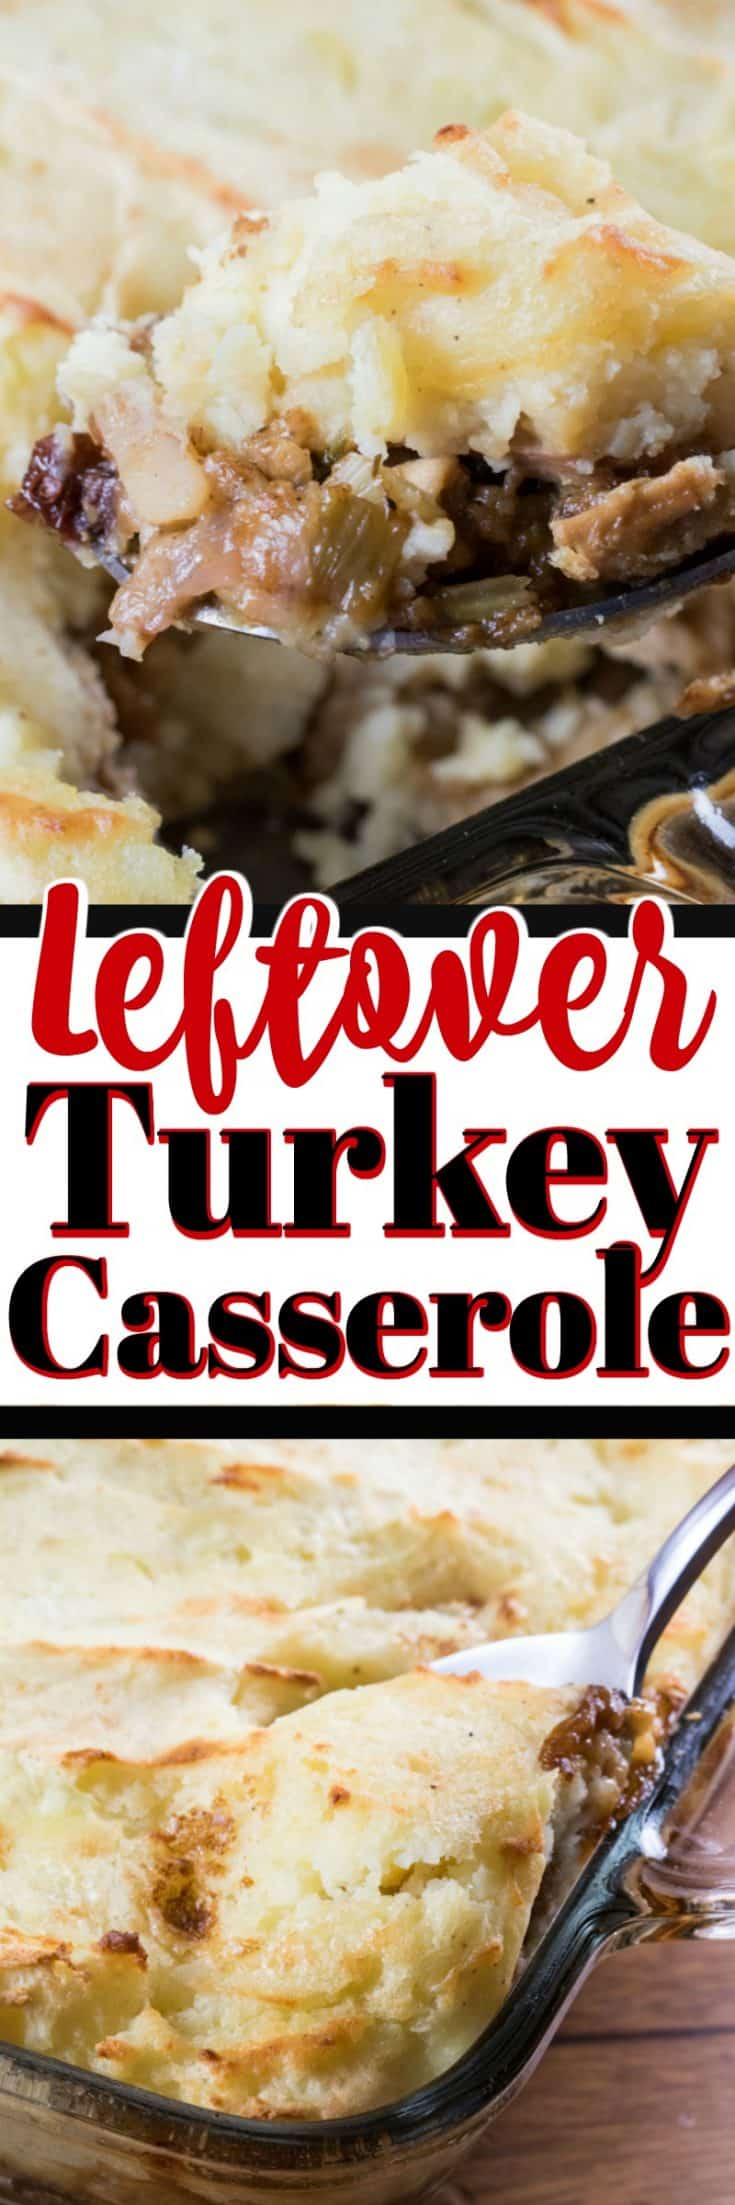 This Leftover Turkey Casserole is given new life with delicious puffy mashed potatoes. #casserole #leftoverturkey #stuffing #leftovers